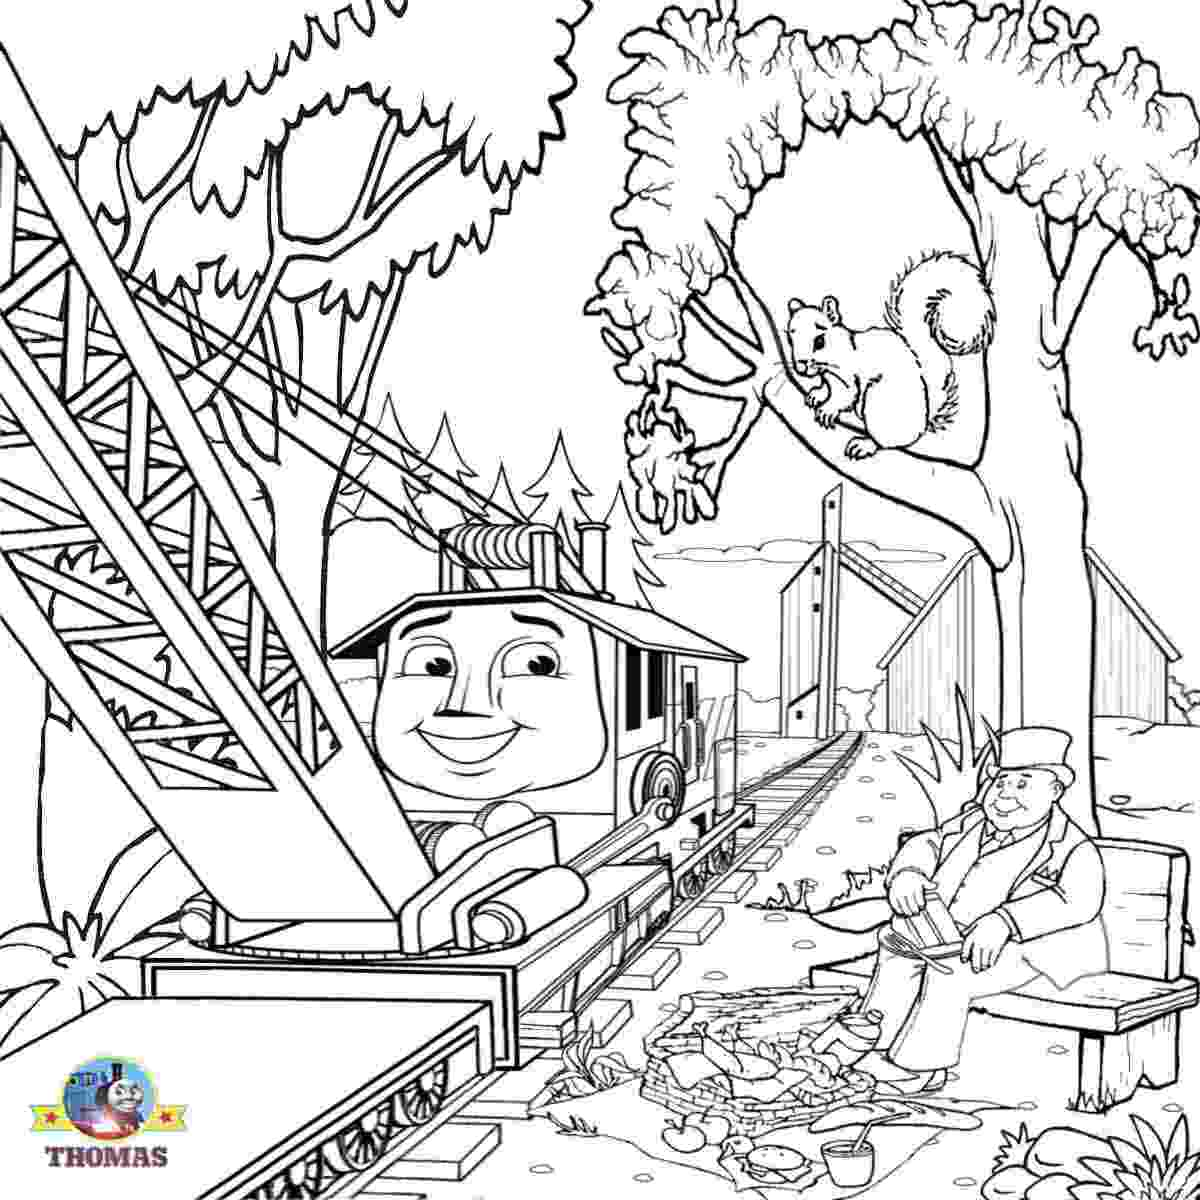 coloring online thomas free printable thomas the train coloring pages for kids thomas online coloring